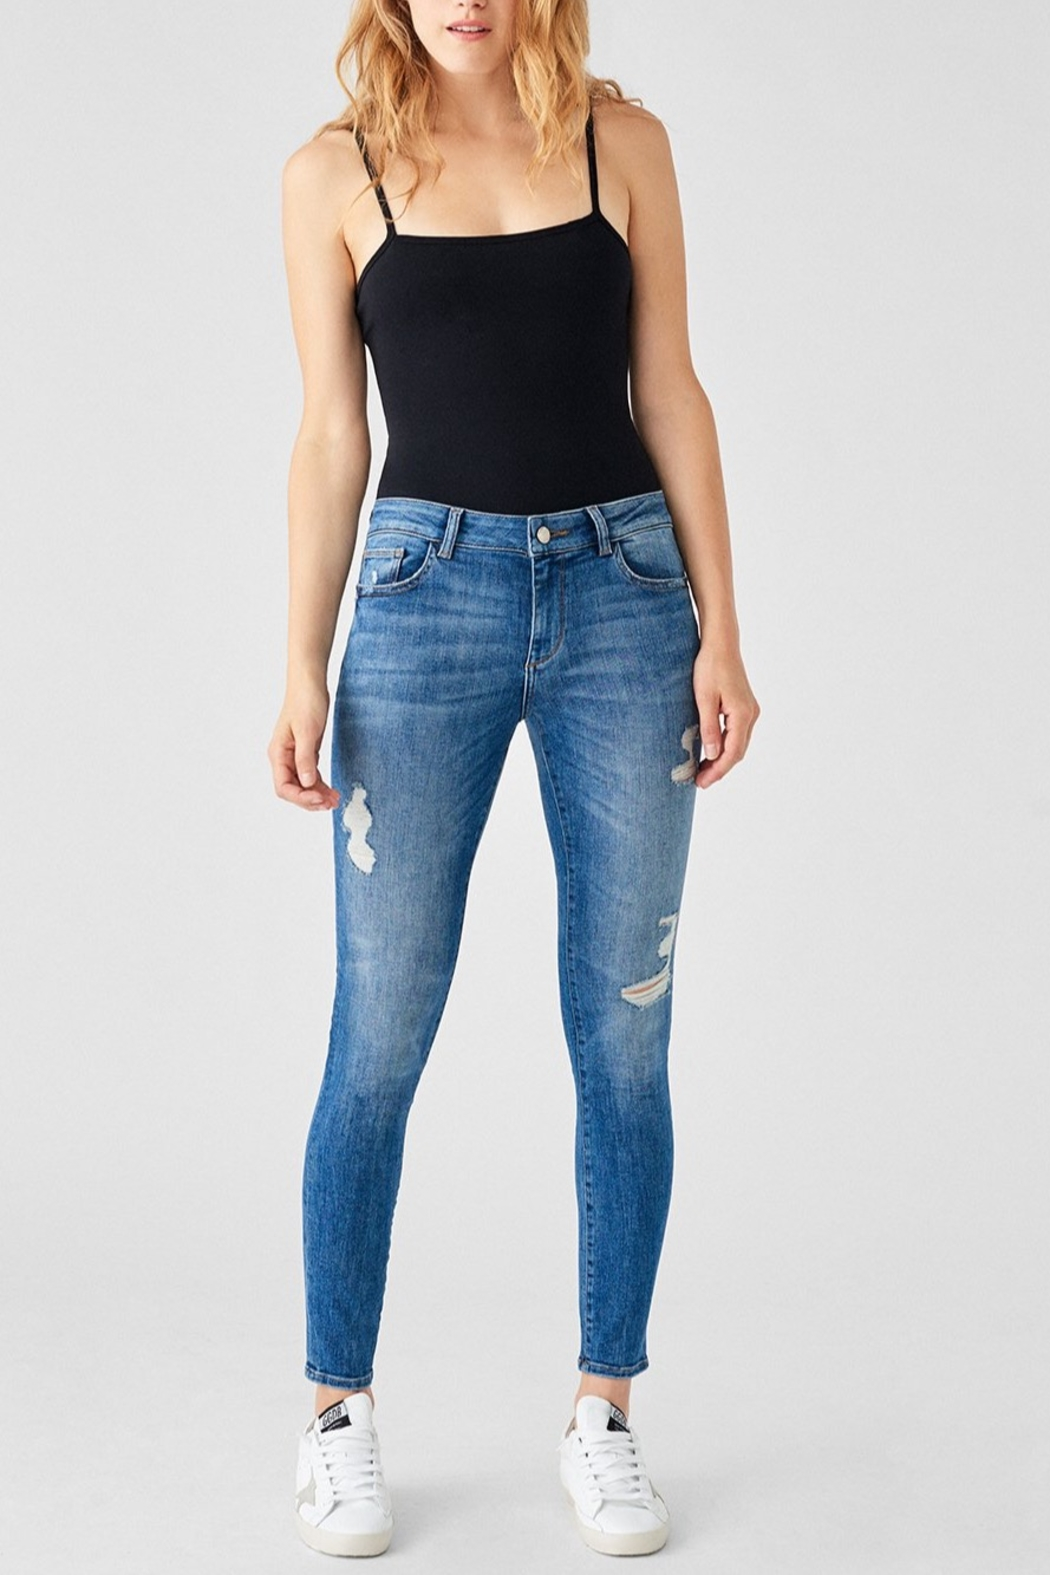 DL1961 Florence Mid Rise Skinny in Full Richland - Main Image